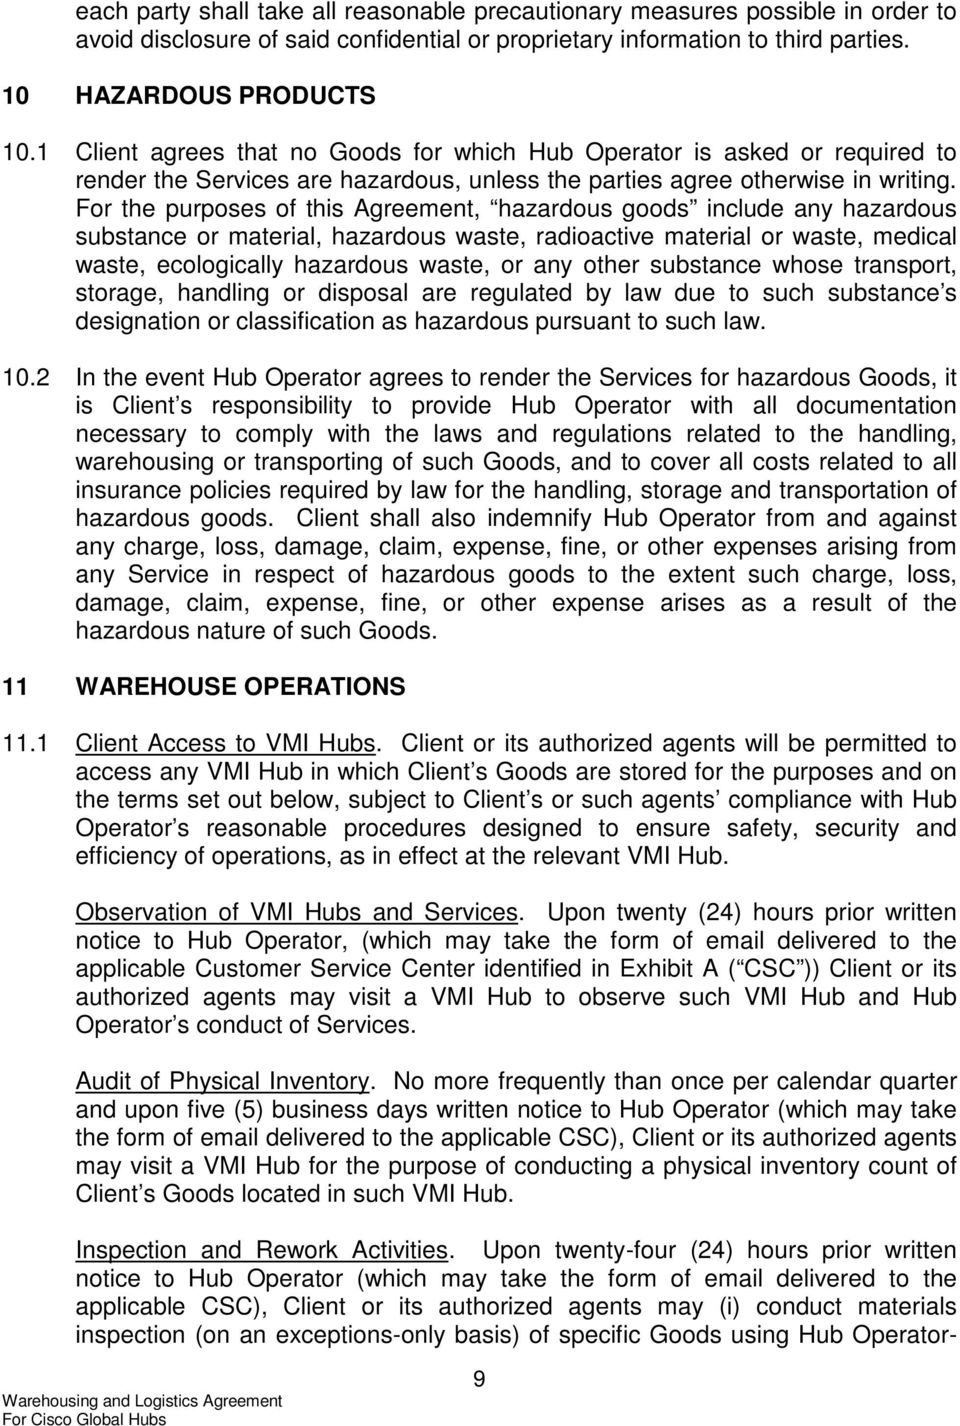 Warehousing And Logistics Agreement For Cisco Global Hubs Pdf